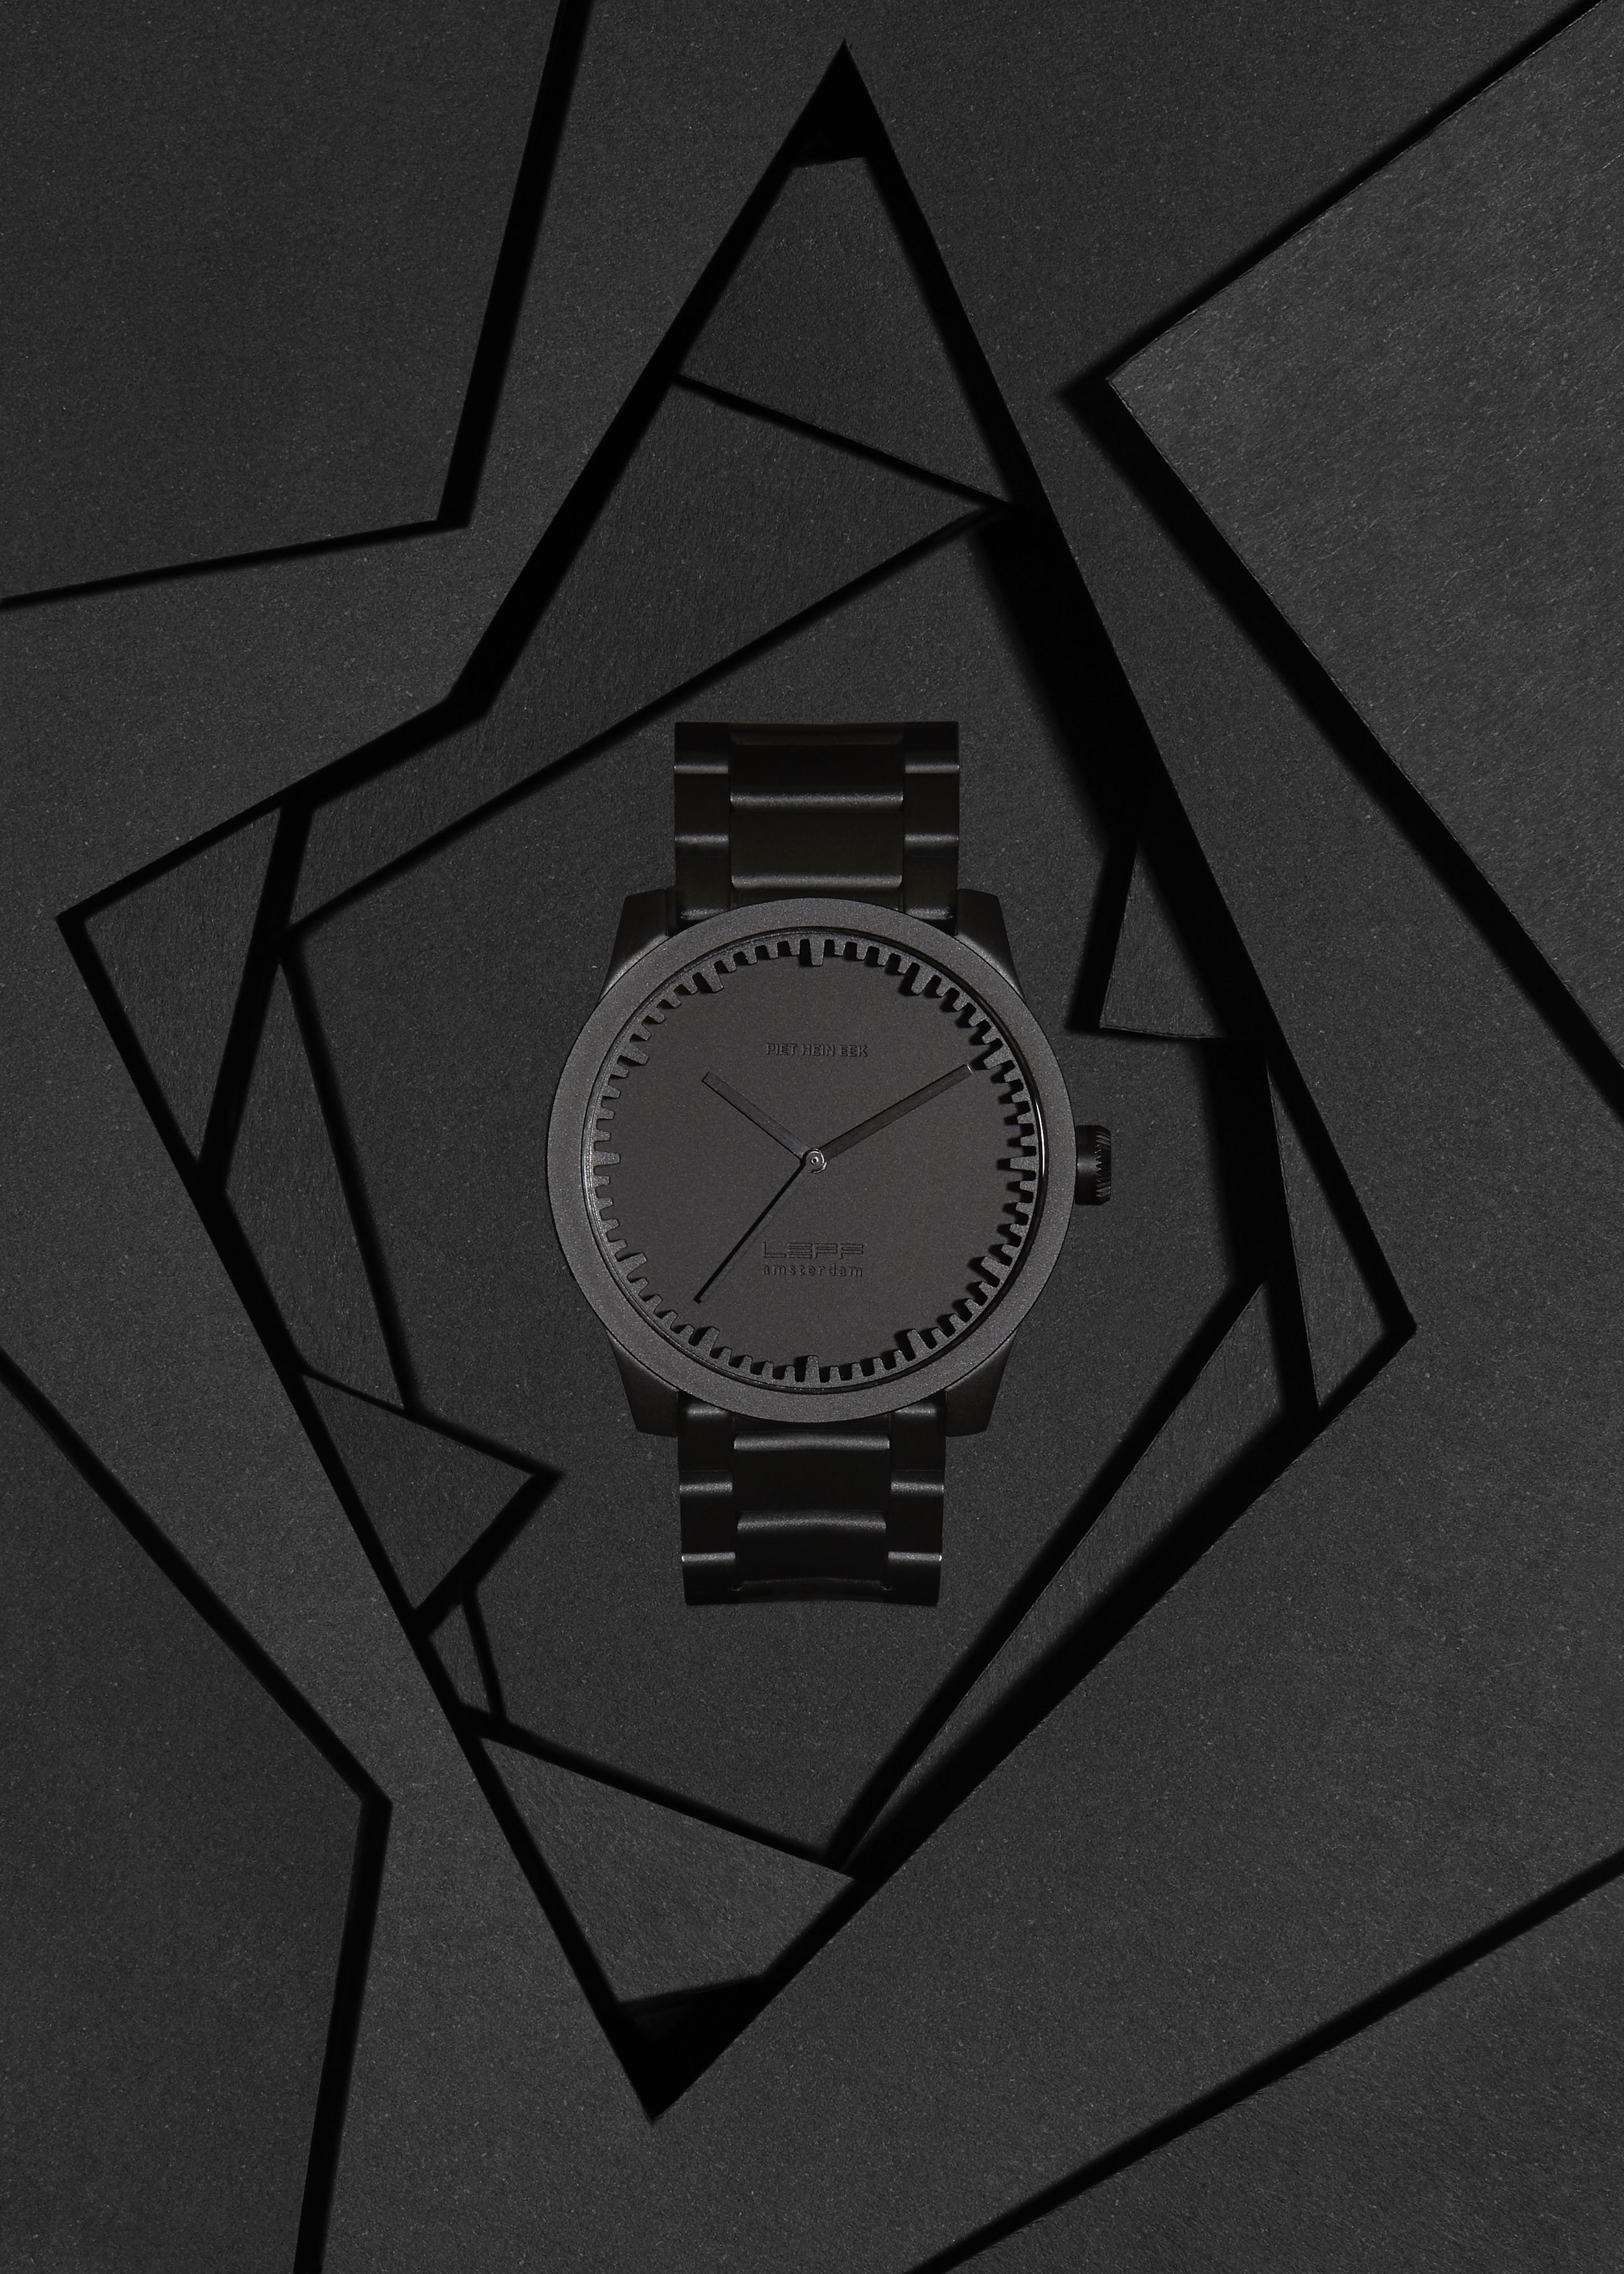 Leff Amsterdam Watch.jpeg